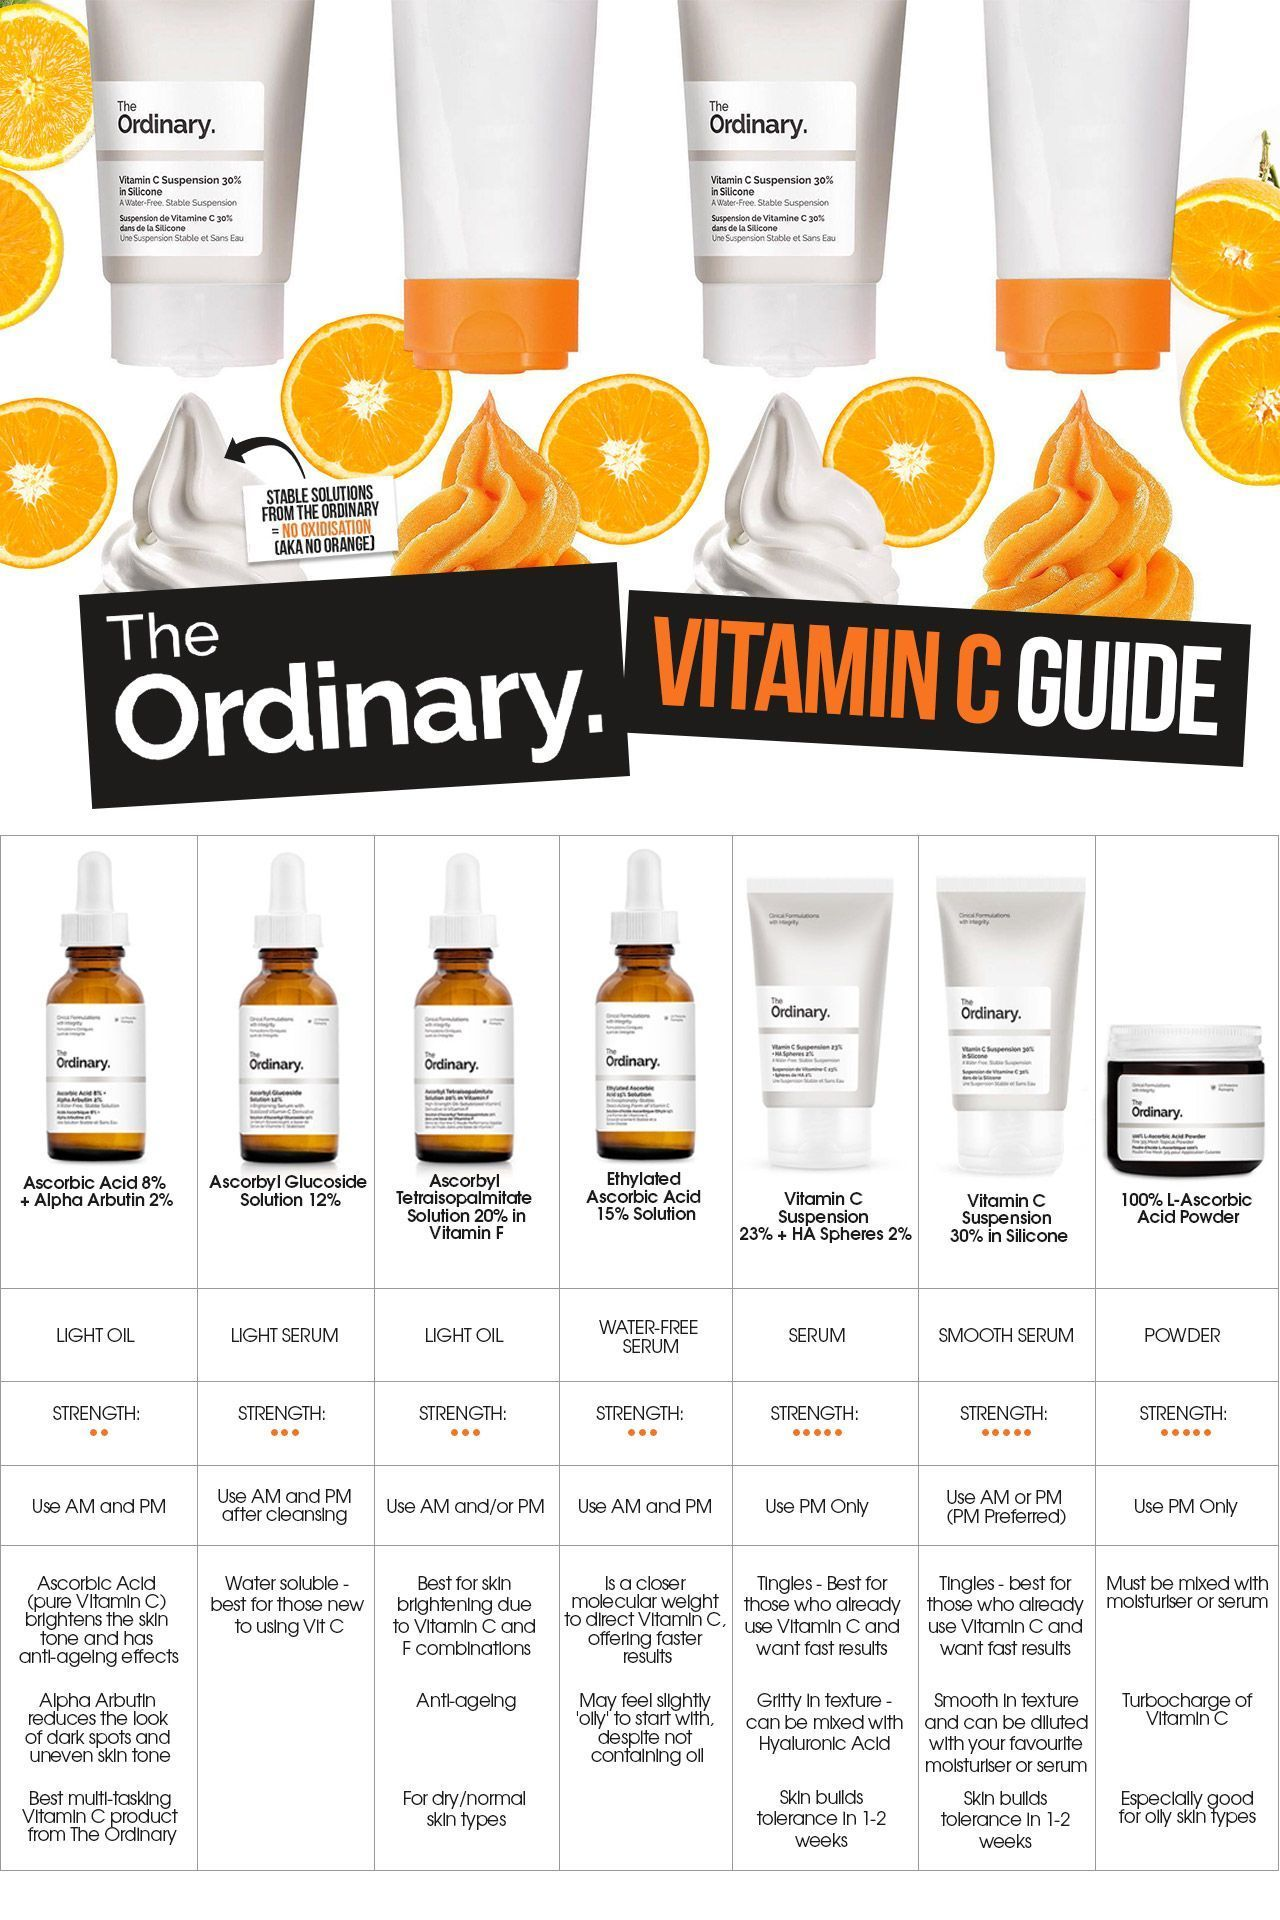 Pin By Desi Kaneva On Healthy Tips In 2020 The Ordinary Skincare Face Skin Care Anti Aging Skin Products